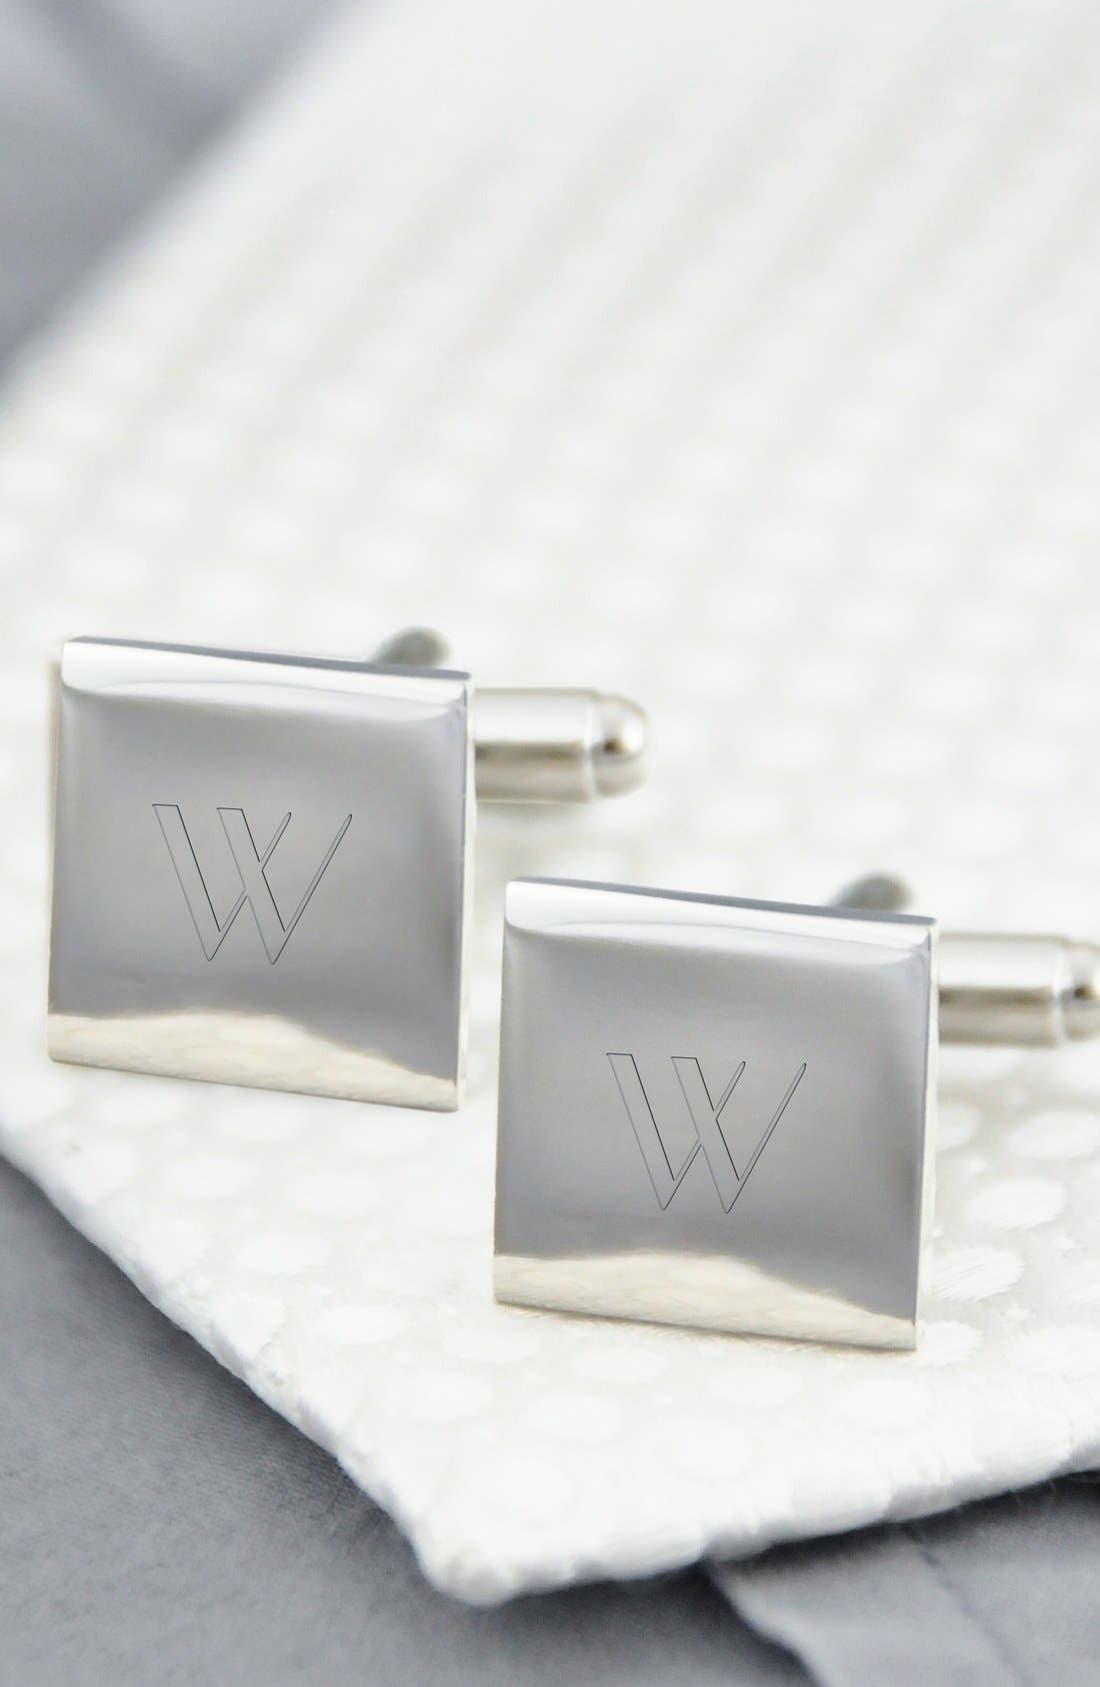 CATHYS CONCEPTS Monogram Square Cuff Links